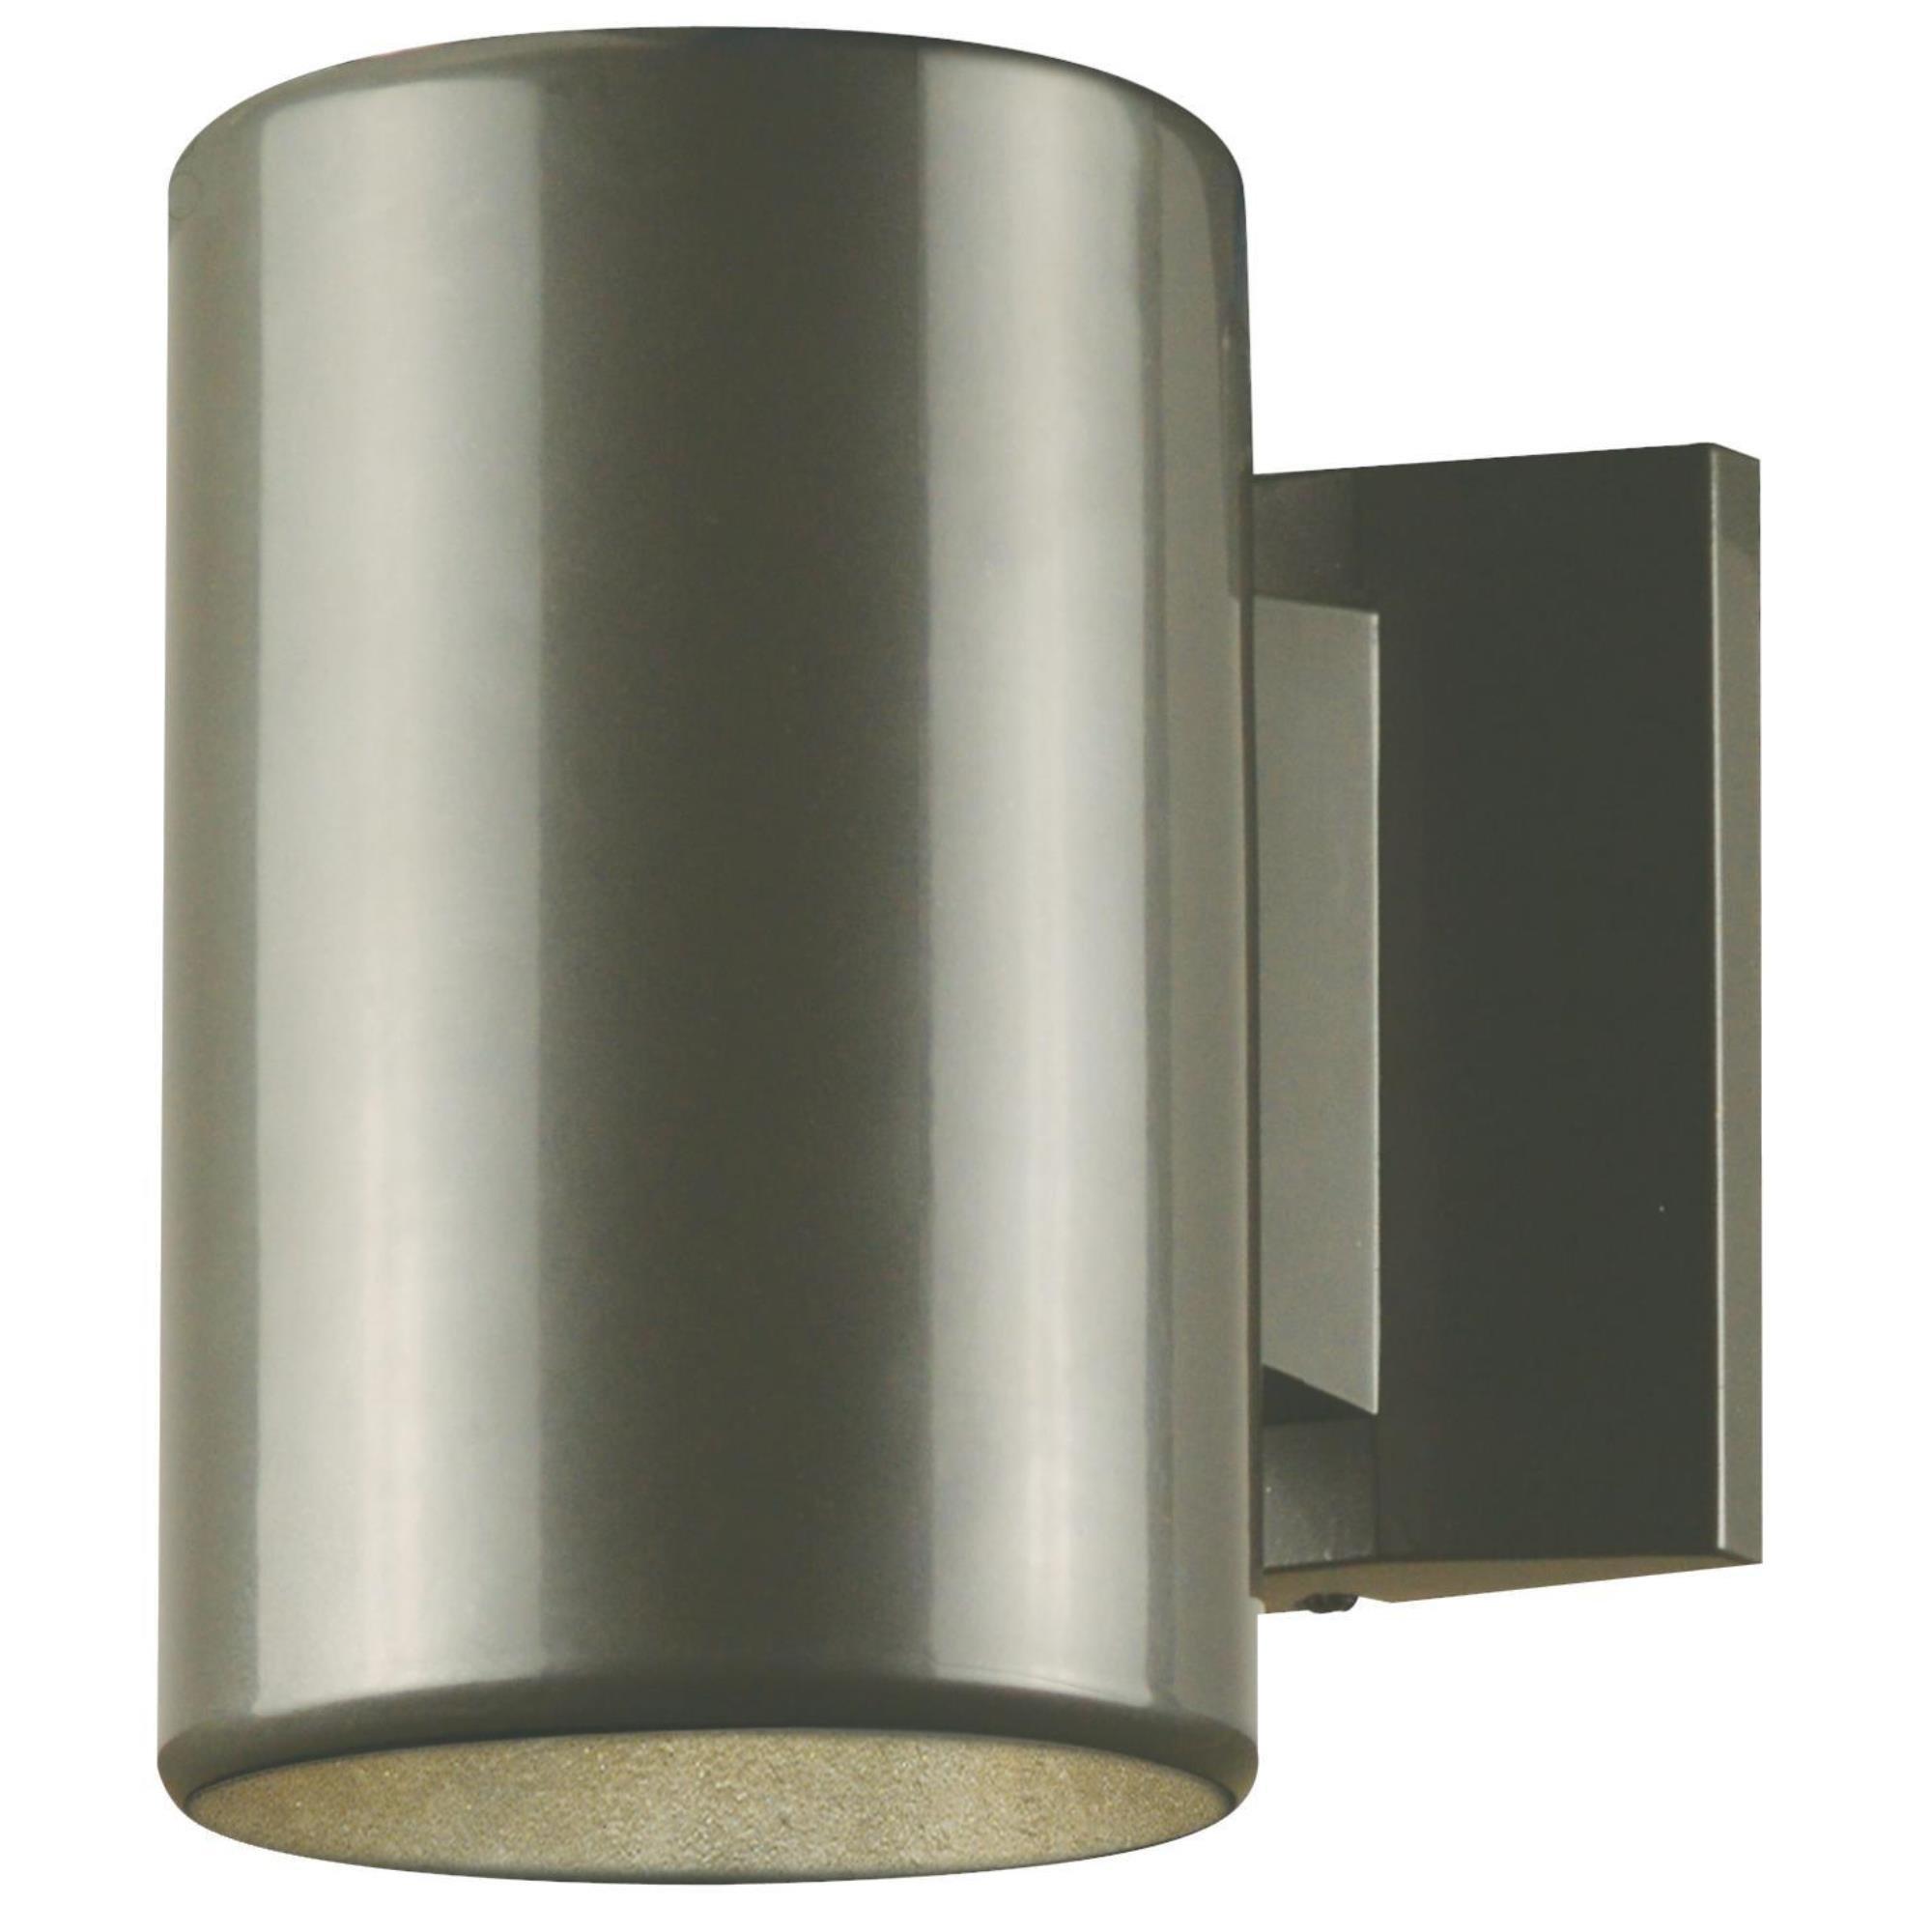 Westinghouse 6797300 One-Light Outdoor Wall Fixture, Polished Graphite Finish